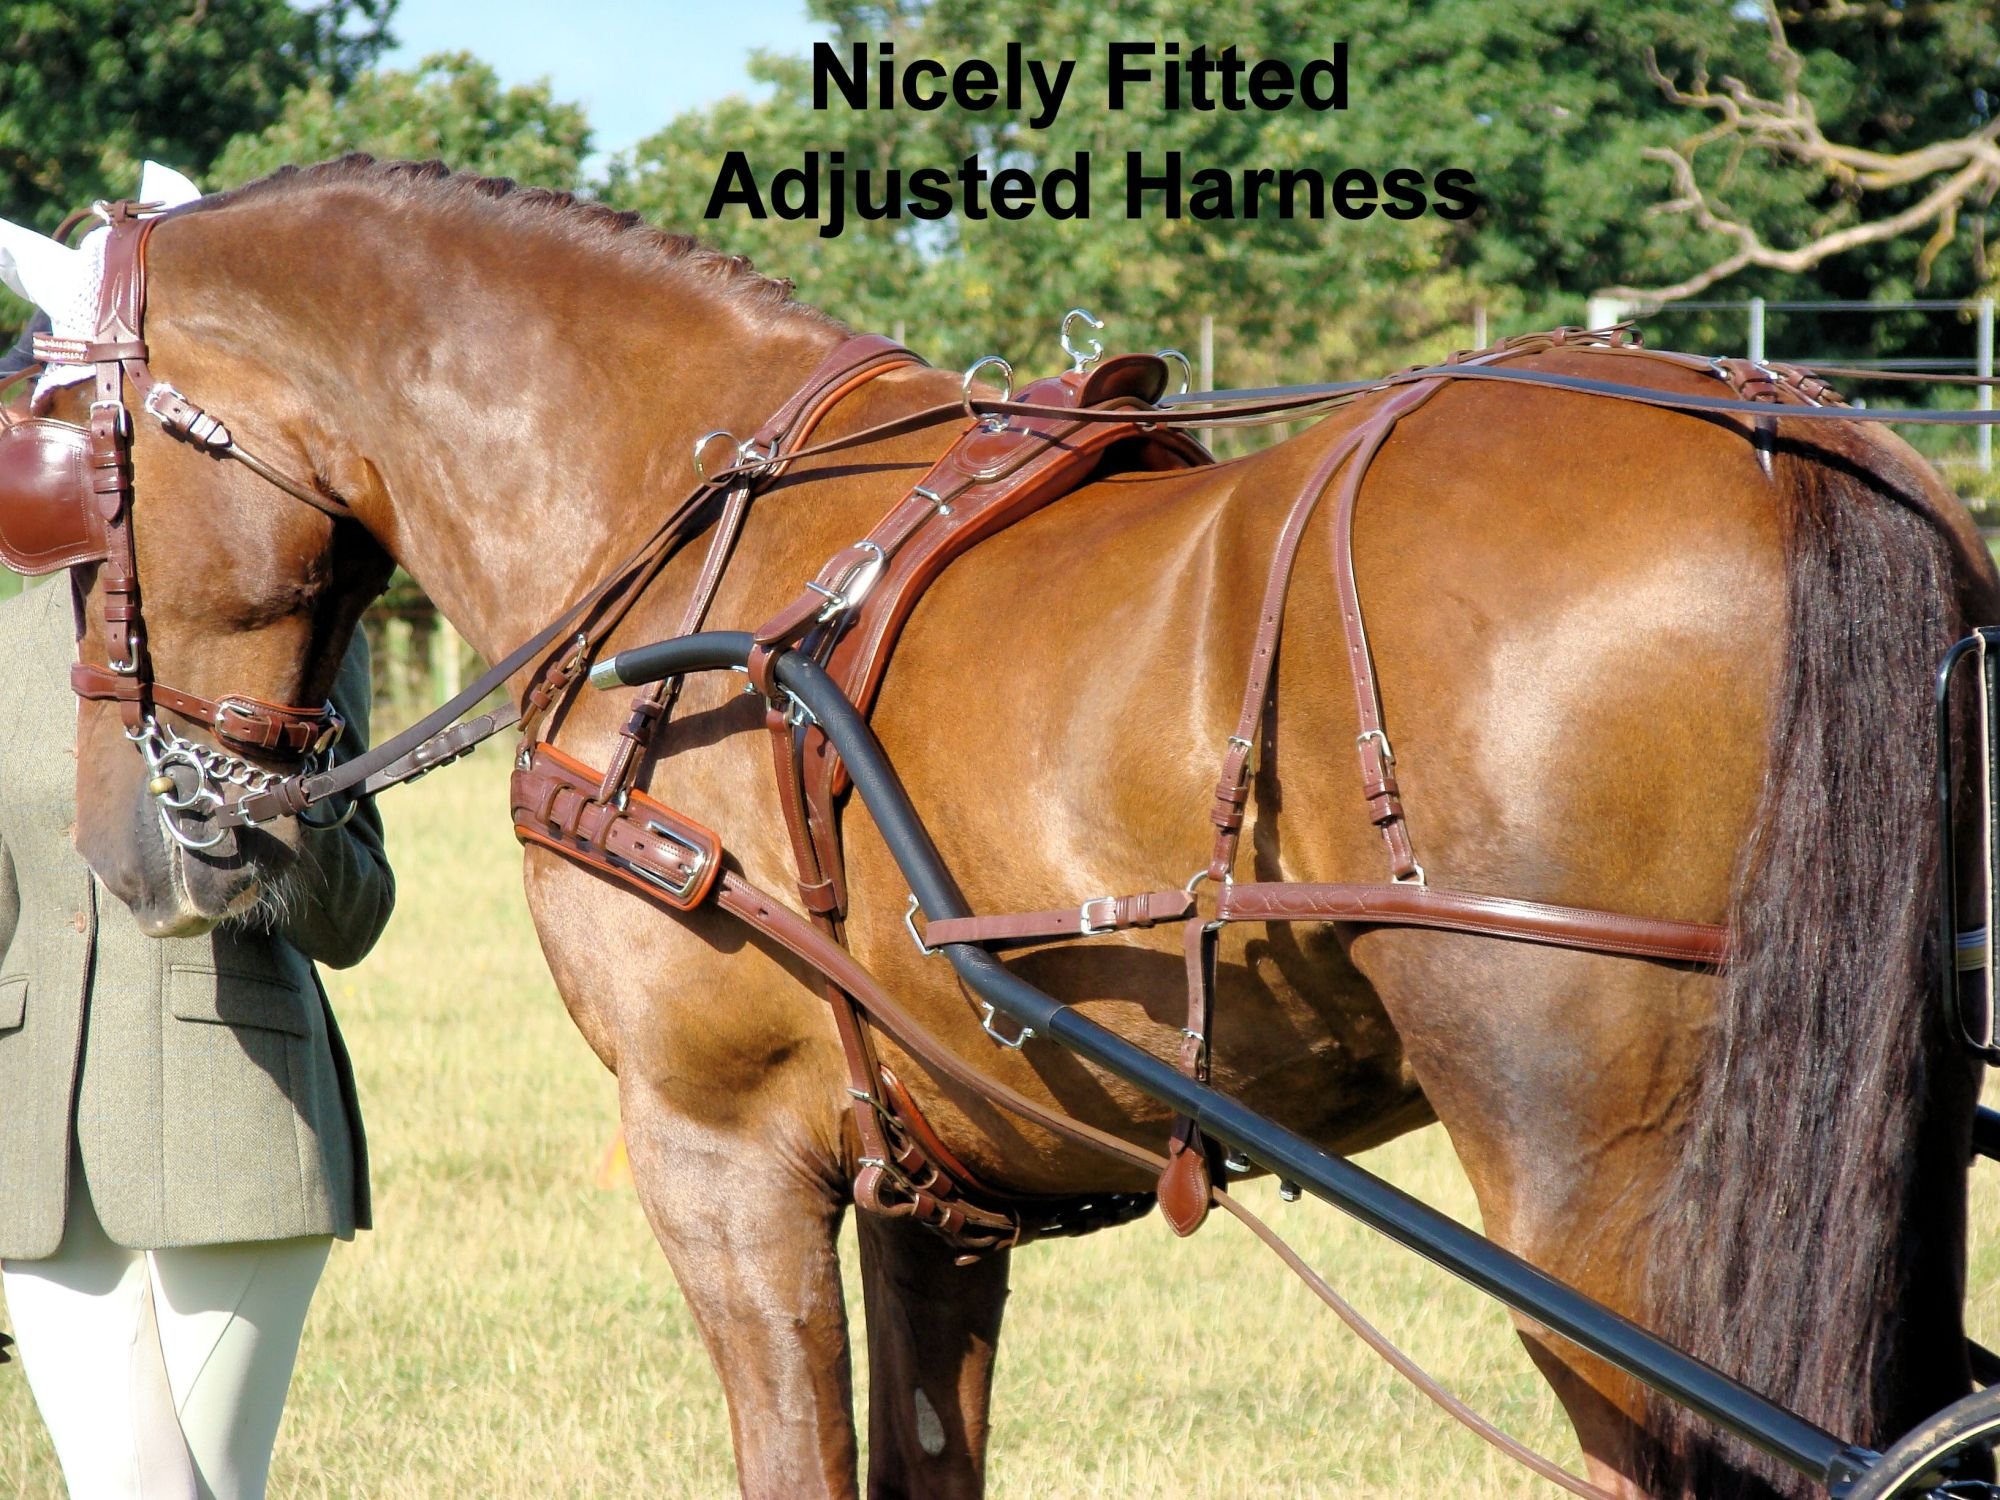 hight resolution of well fitted sized horse harness